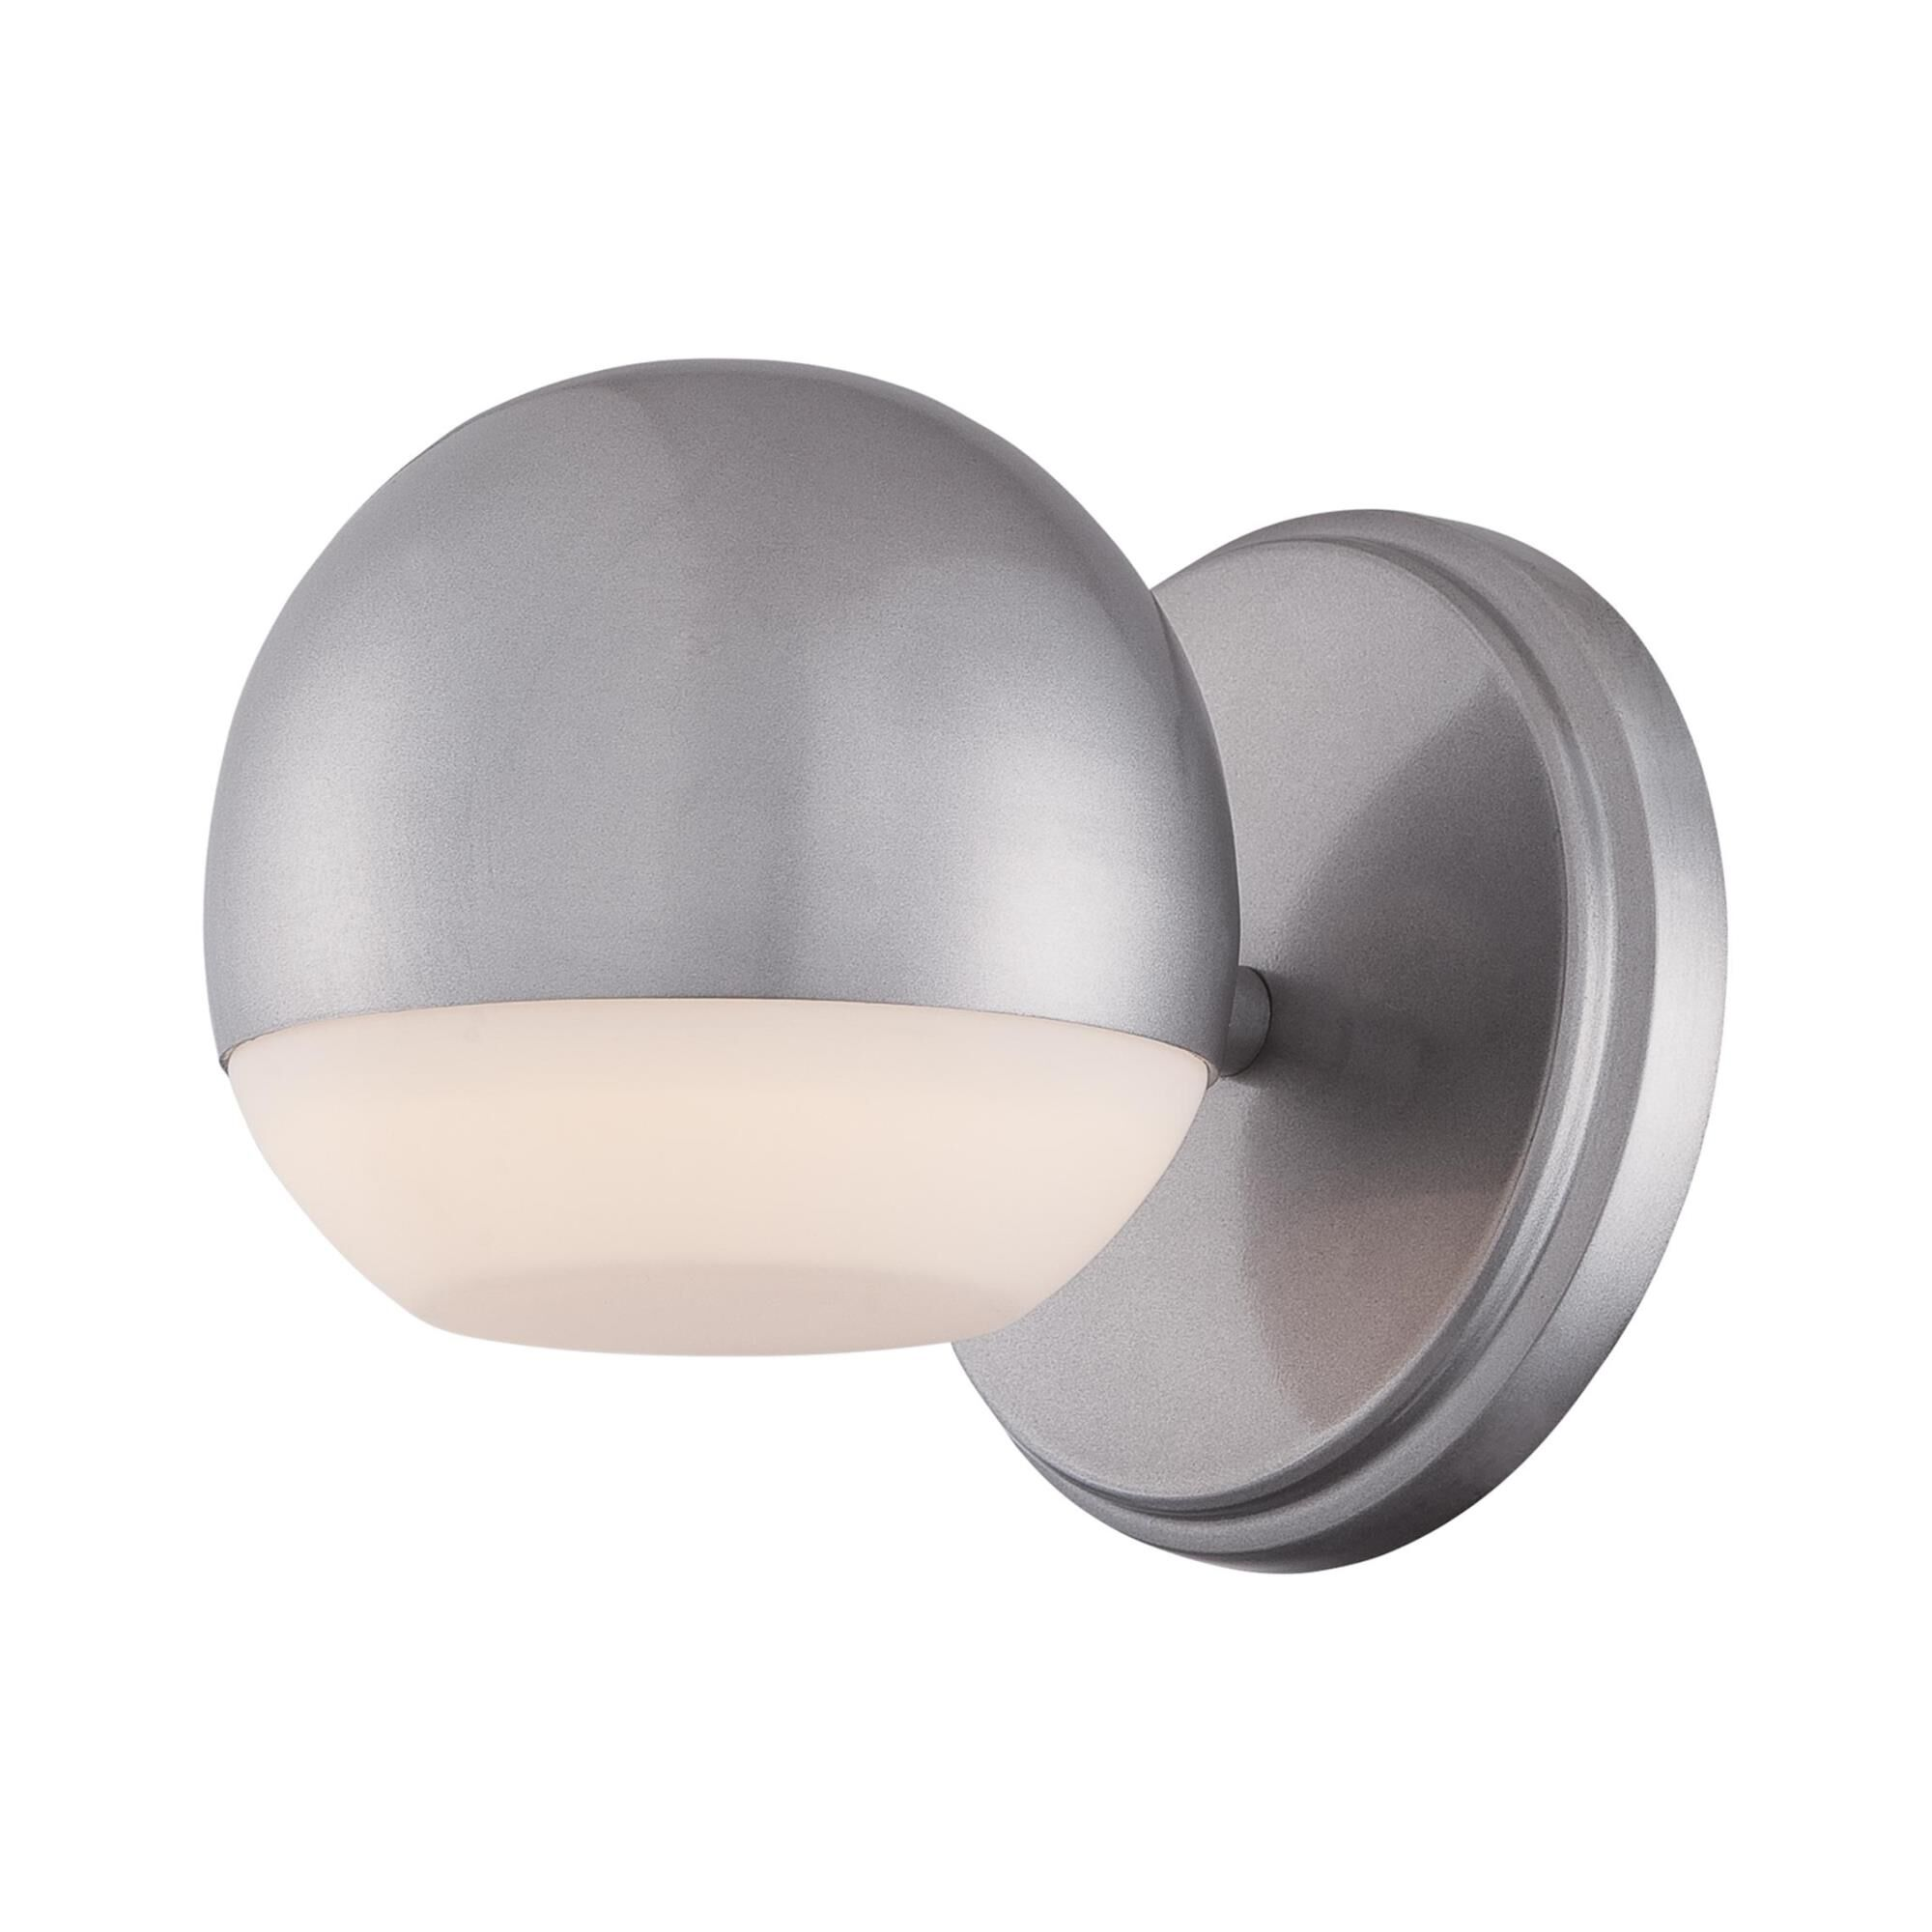 Kovacs Droplet 5 Inch Tall 1 Light Led Outdoor Wall Light Droplet - P1229-566-l